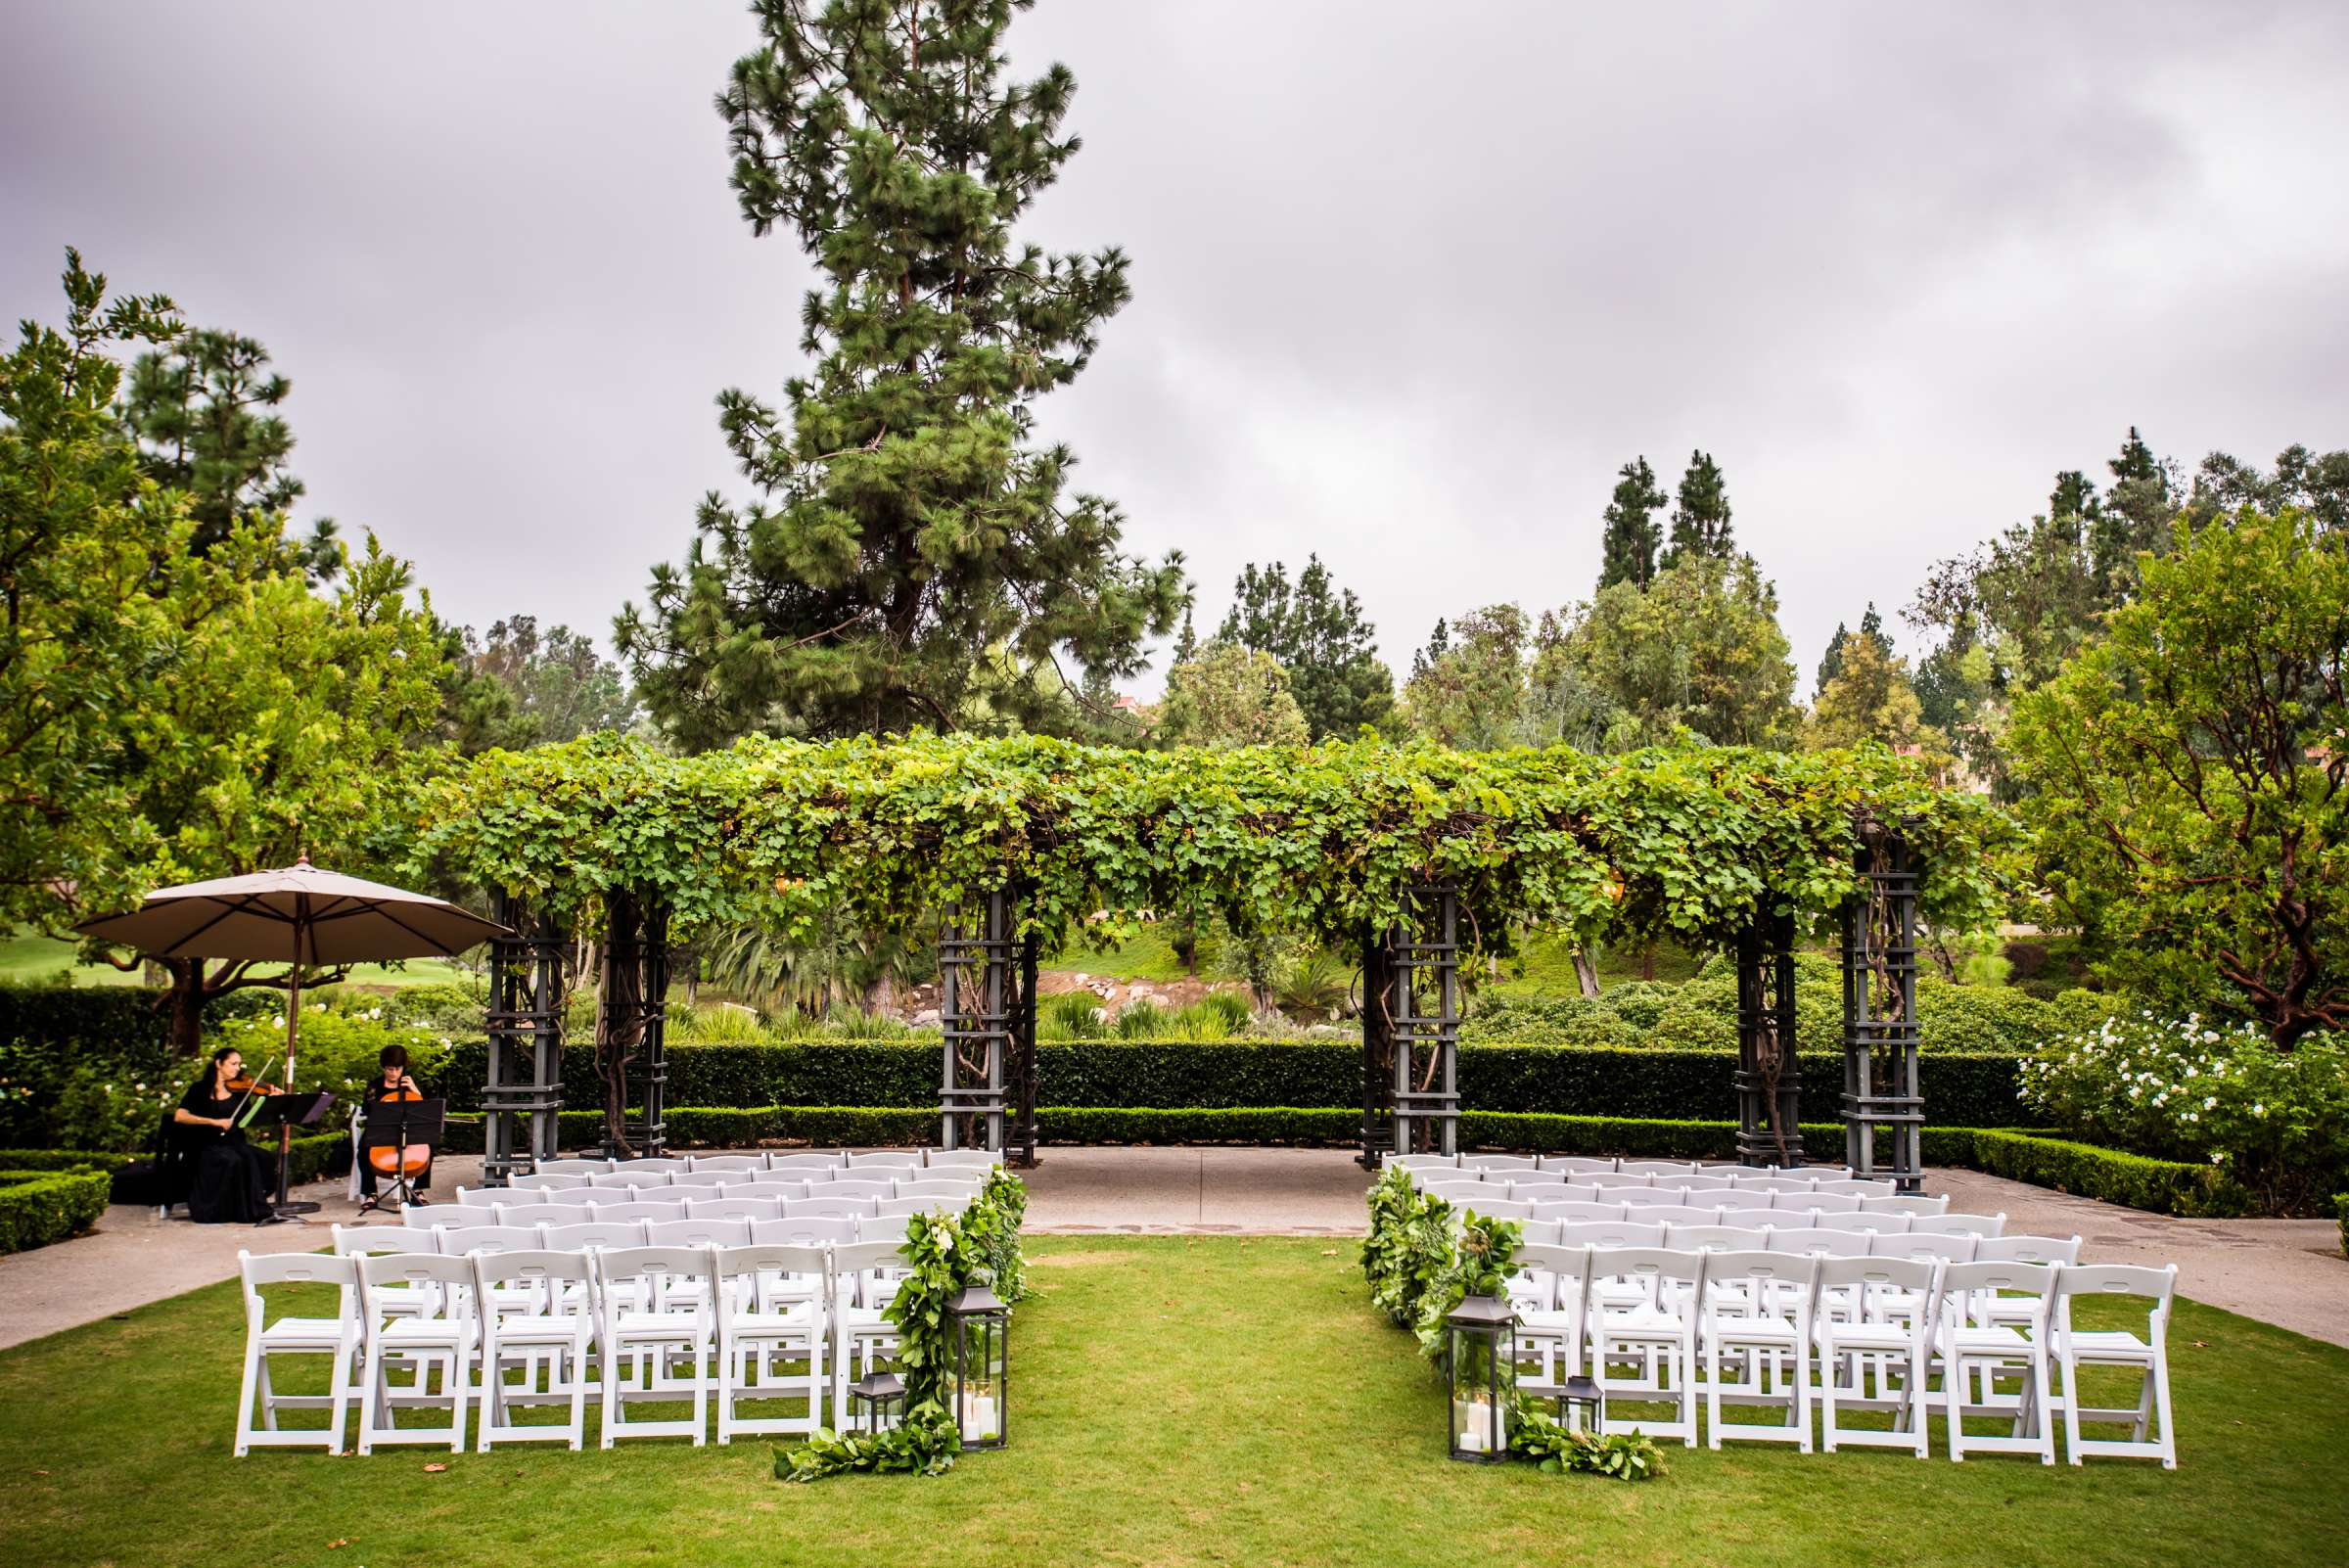 Rancho Bernardo Inn Wedding coordinated by Très Chic Events, Stefania and Nicholas Wedding Photo #9 by True Photography